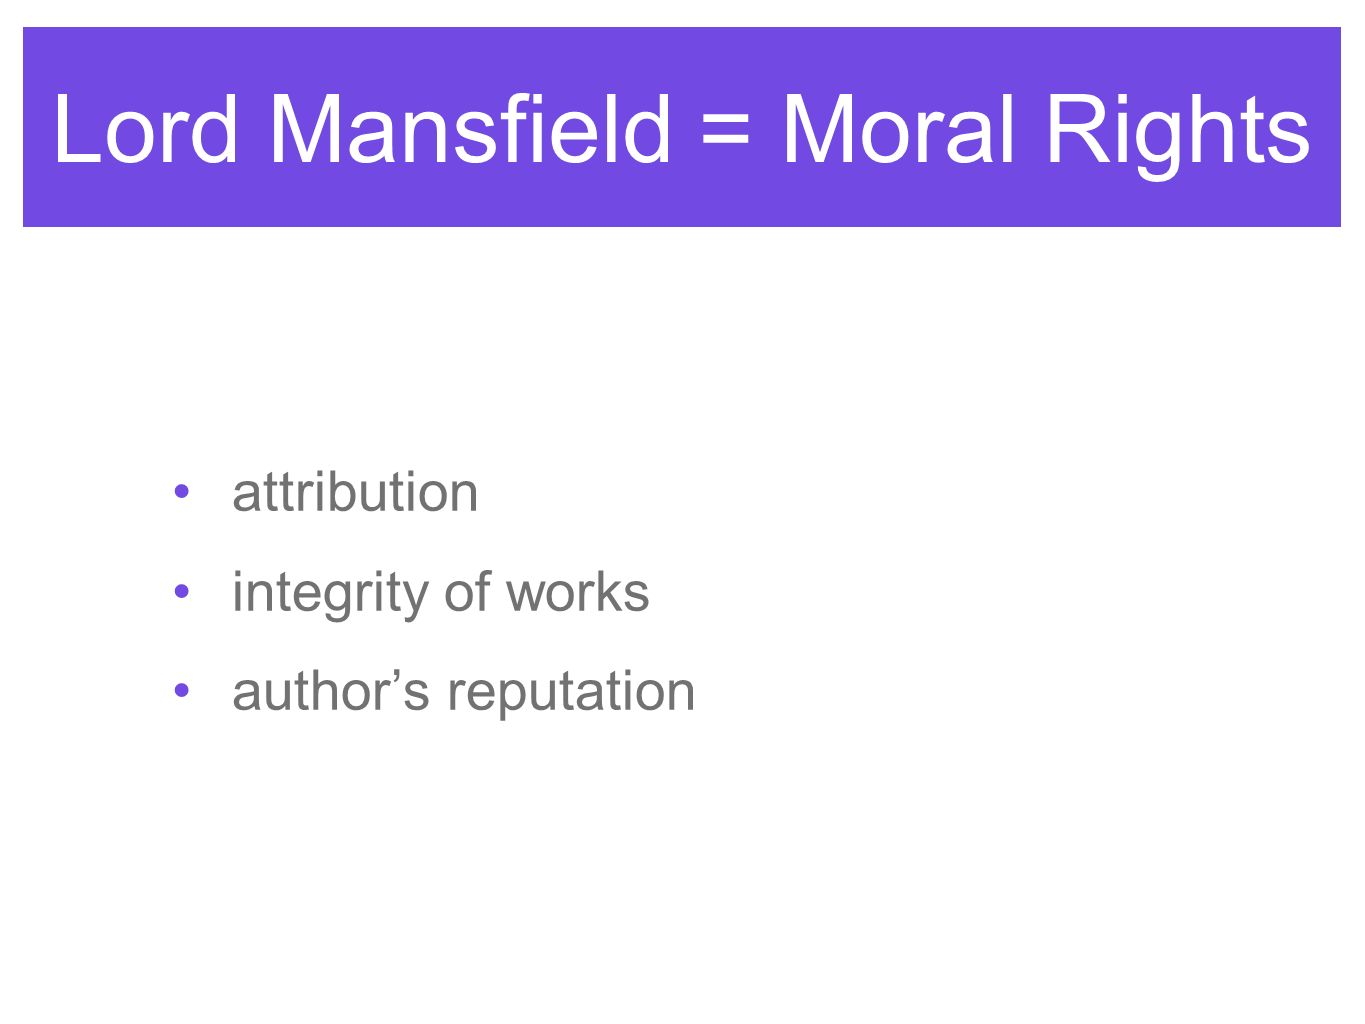 Lord Mansfield = Moral Rights